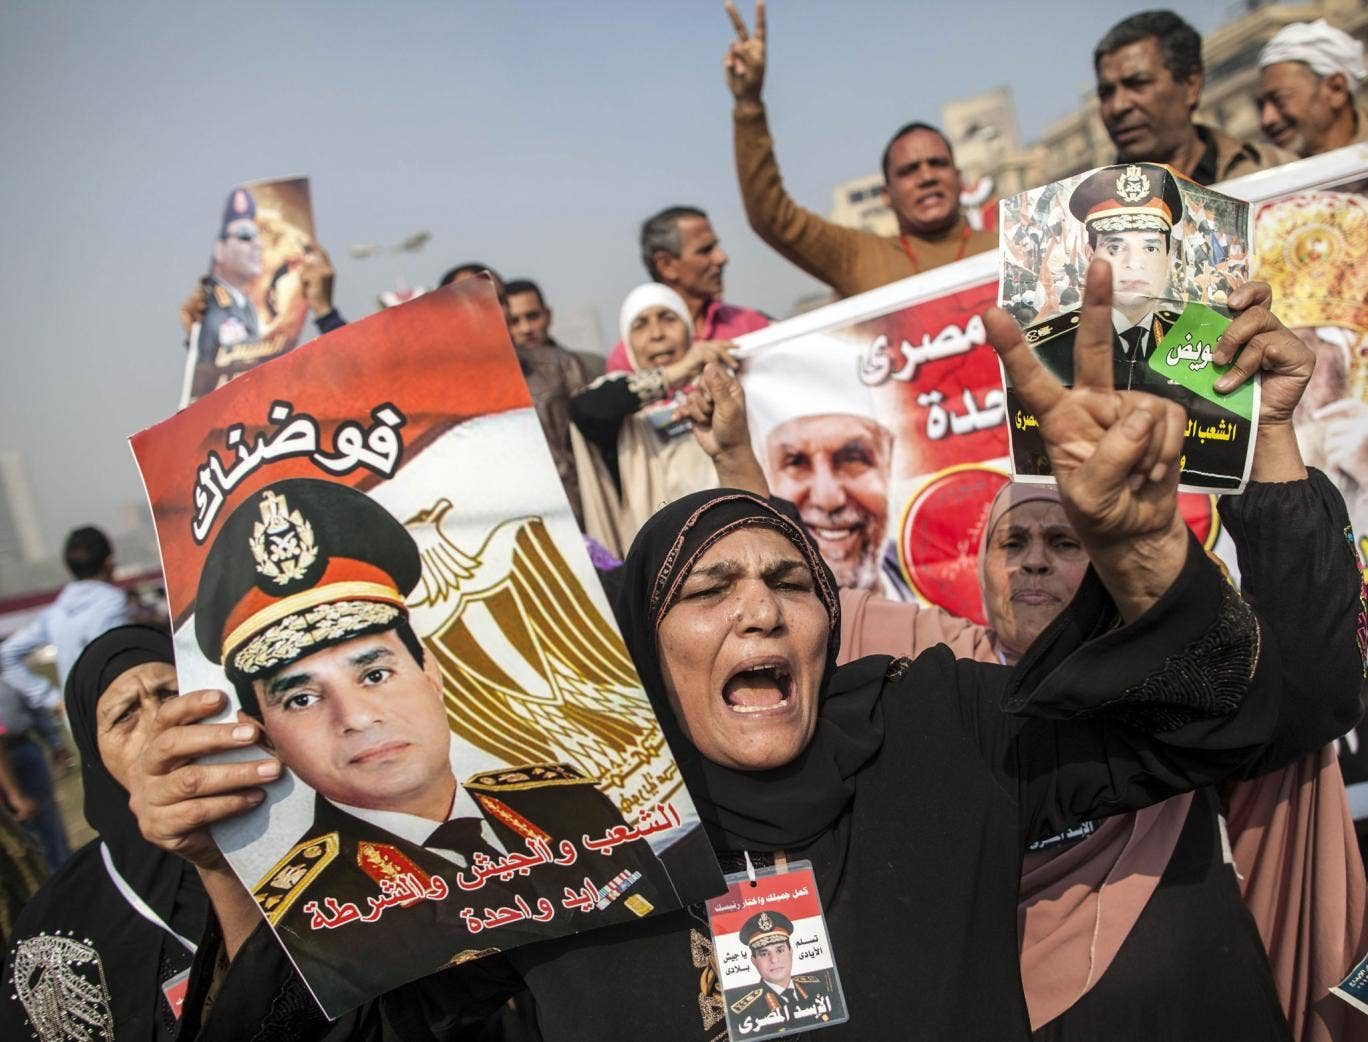 Supporters of Egypt's military chief Abdel Fattah al-Sisi hold his portrait on November 19, 2013